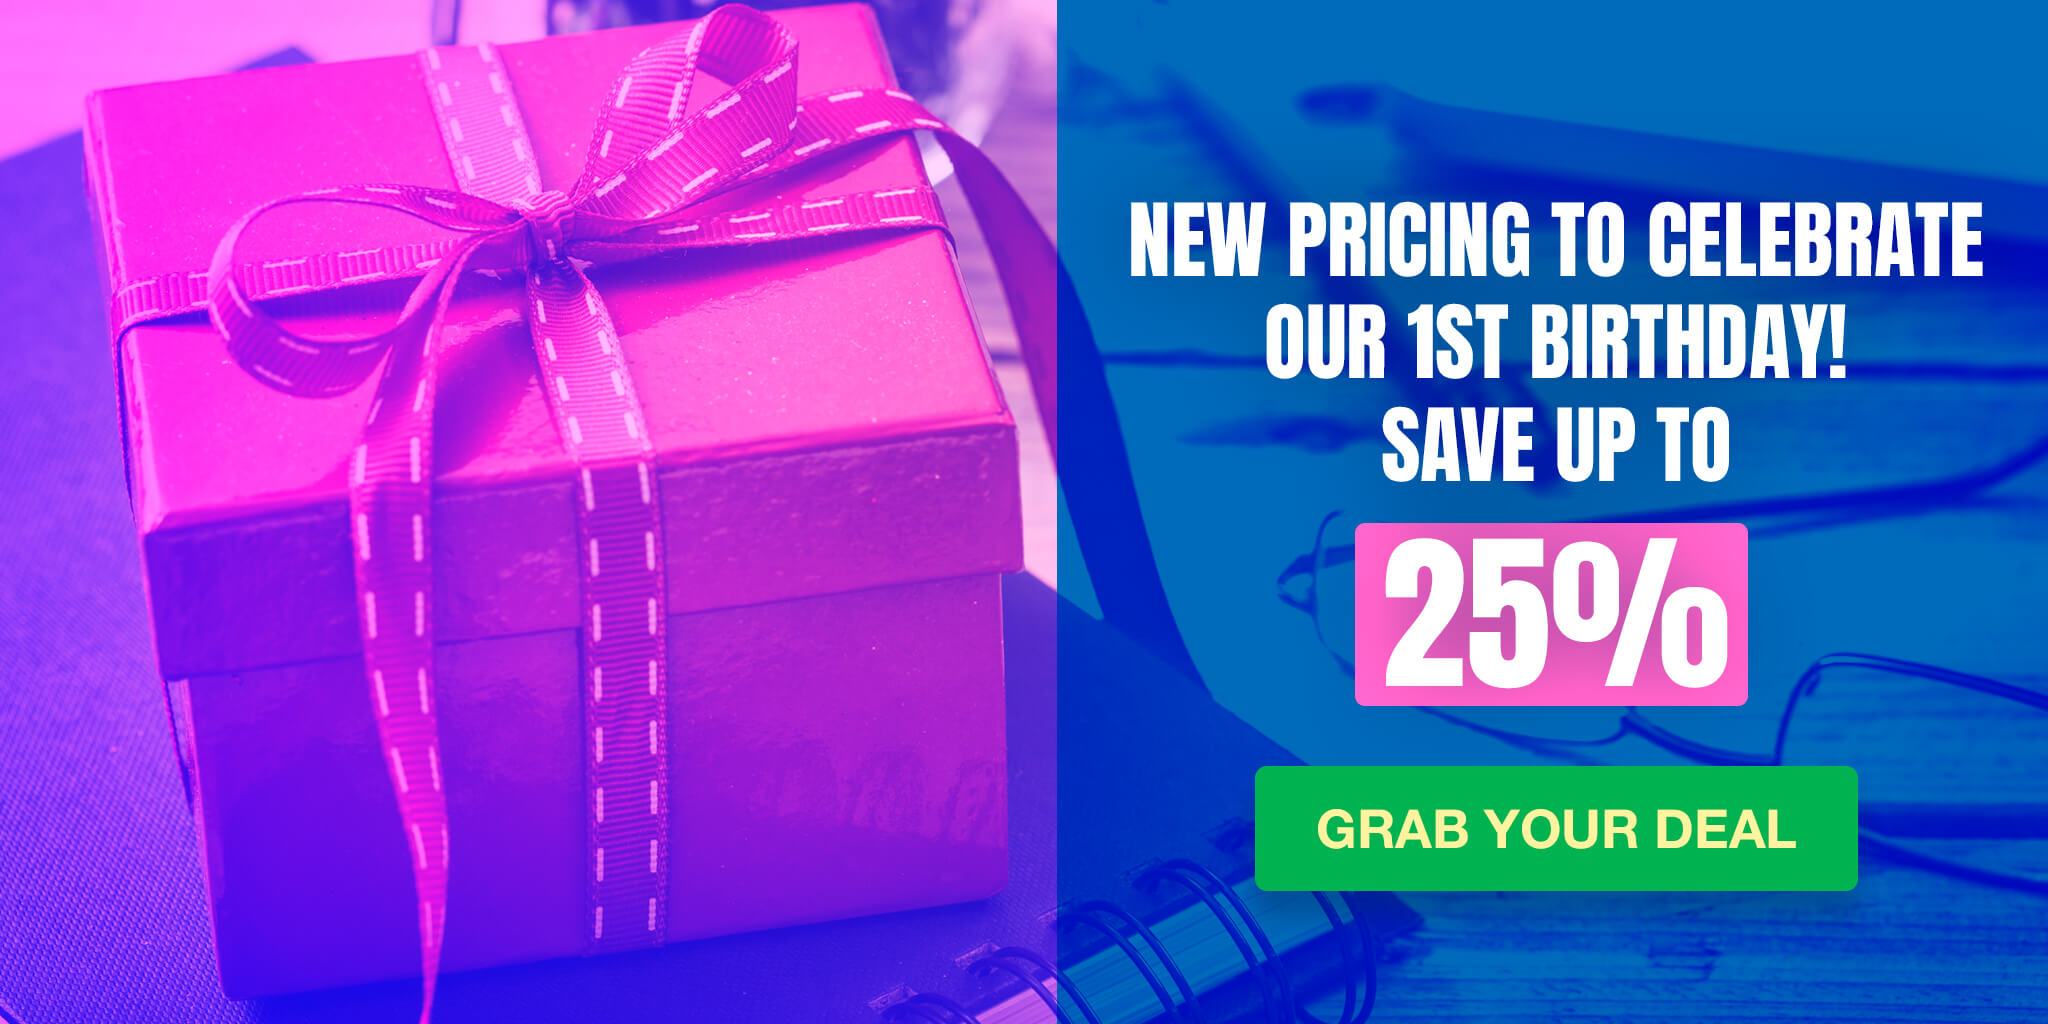 Save up to 25% with new pricing for business solution by KeepSolid to celebrate our 1st birthday